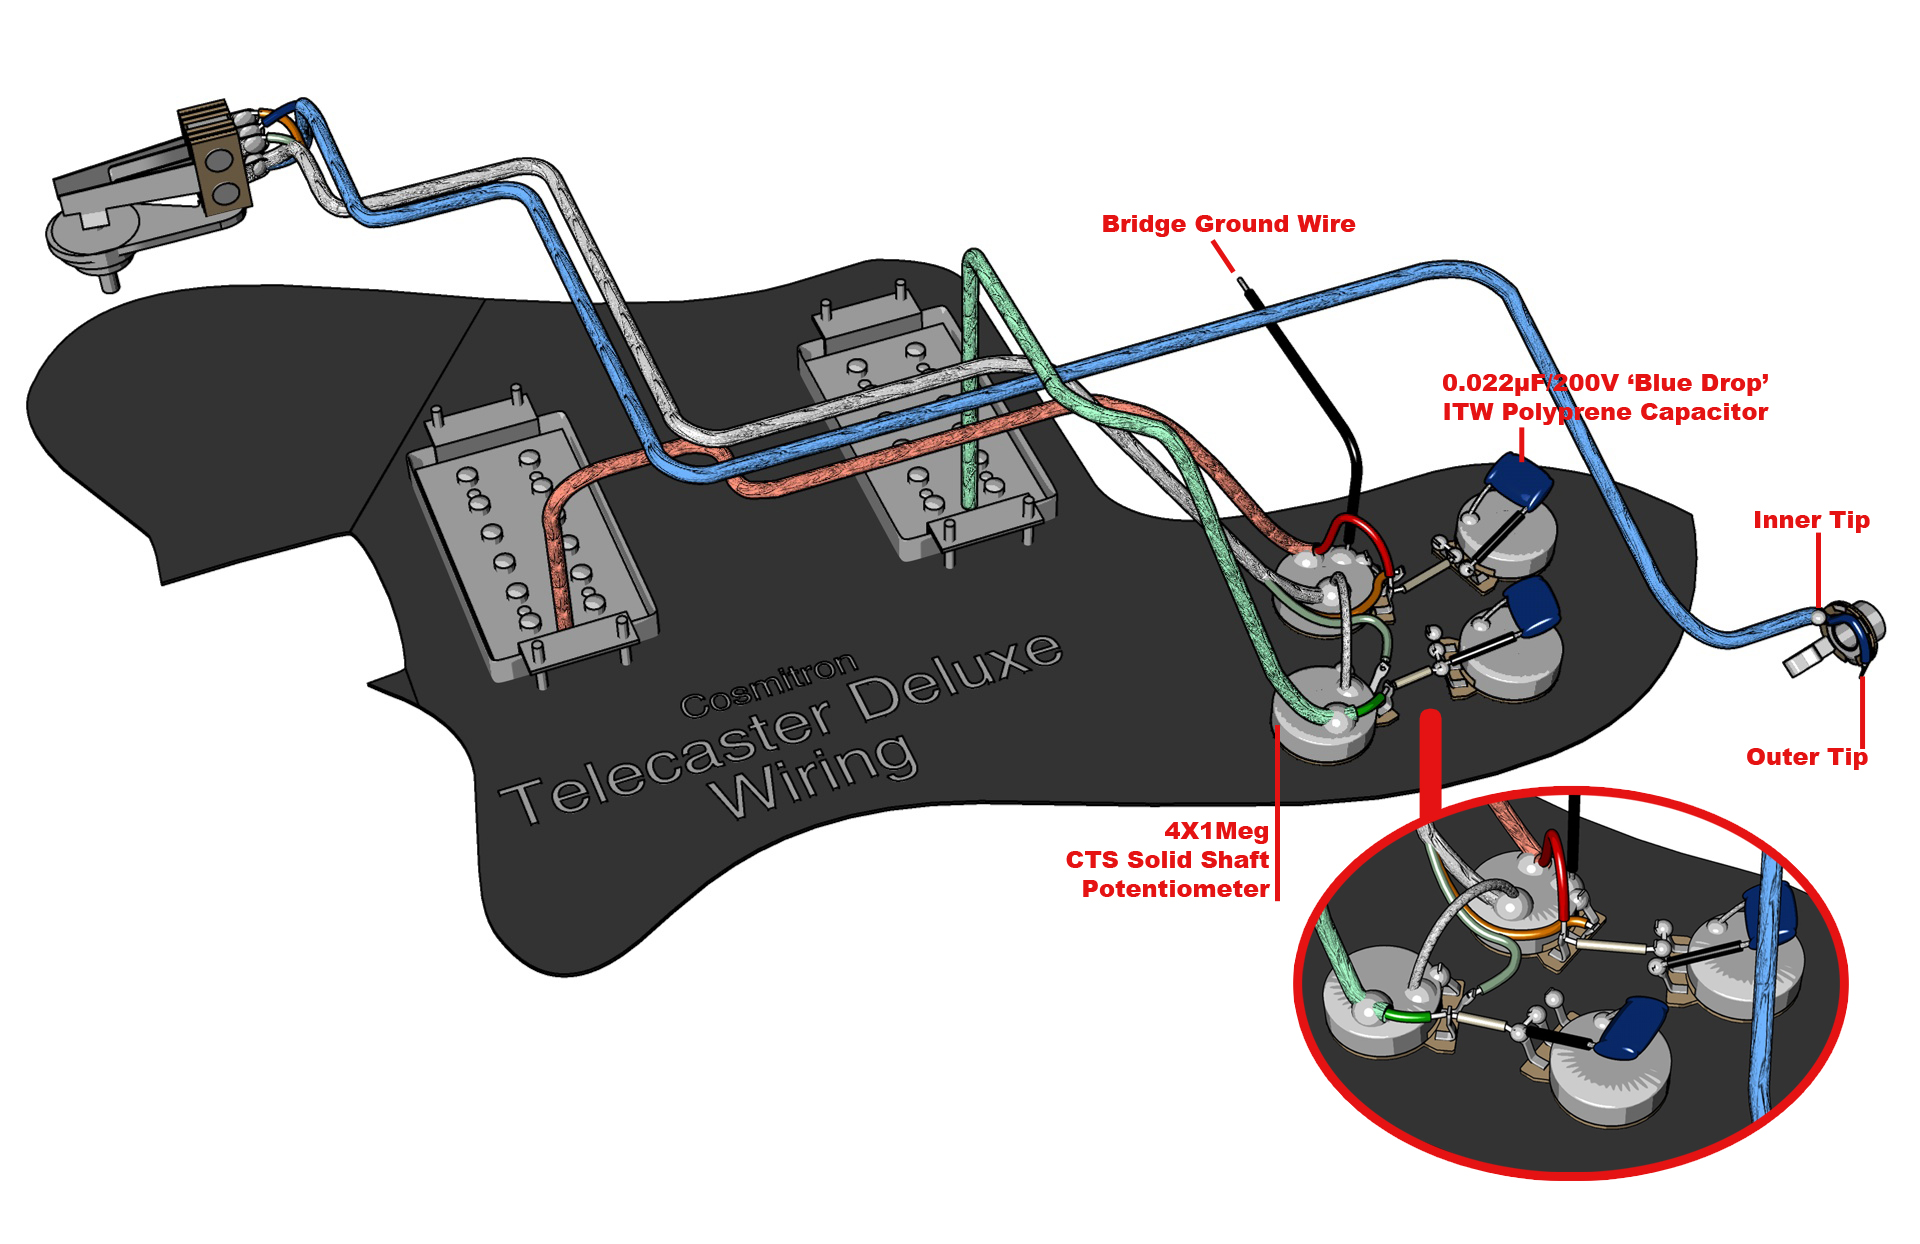 TLDX wiring c ilovefuzz com \u2022 view topic 72ri tele deluxe re wire upgrade project telecaster deluxe wiring diagram at gsmx.co